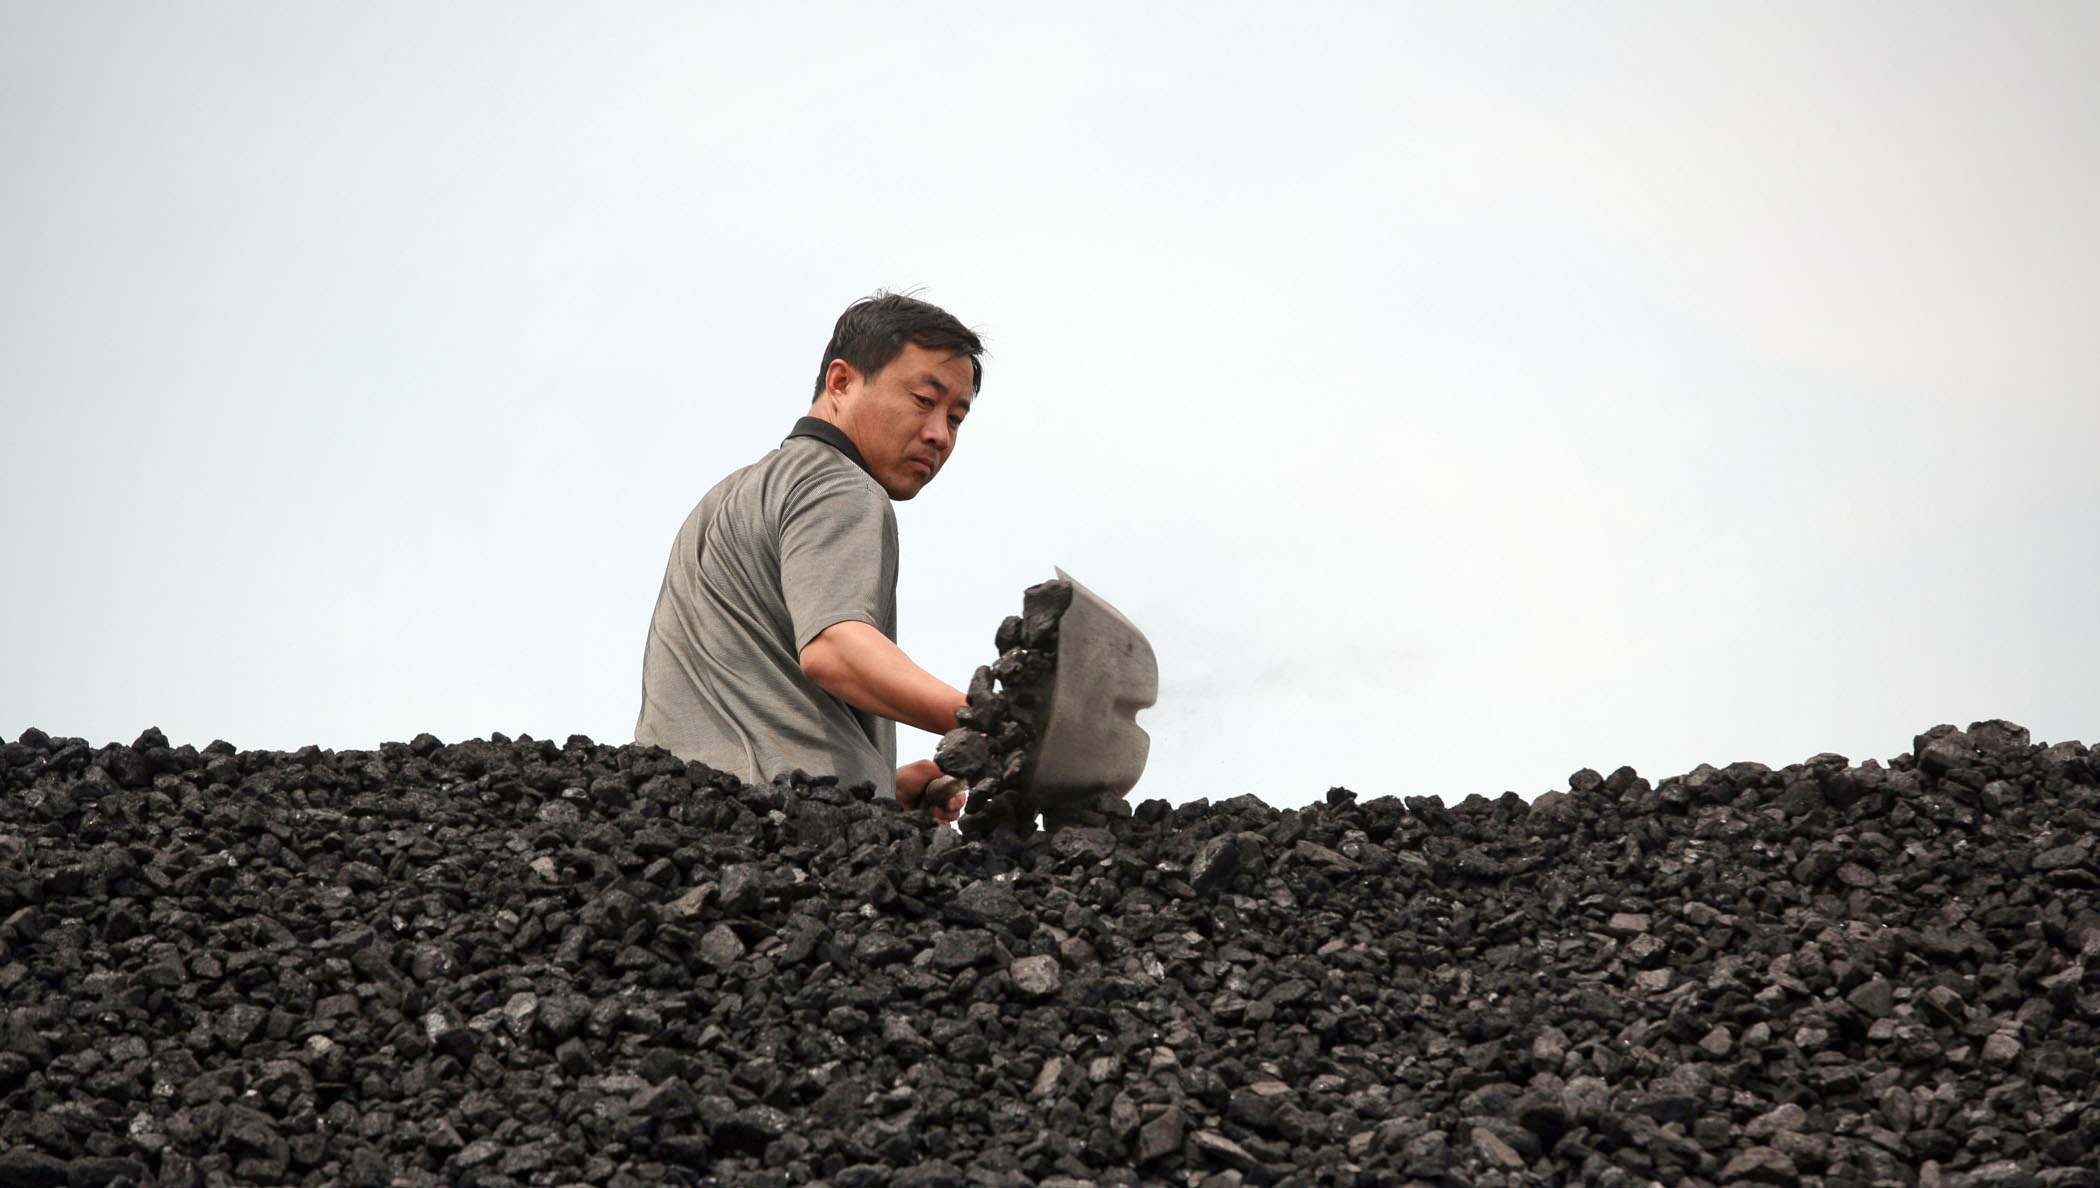 A coal yard worker shovels a load of coal on to the back of a truck in Ningan in Heilongjiang Province July 5, 2006. China saw sharp growth in energy consumption this year. According to statistics, in the first four months, China's coal consumption rose by 13.8 percent over the same period of last year, coke, 11 percent and electricity, 12.5 percent.